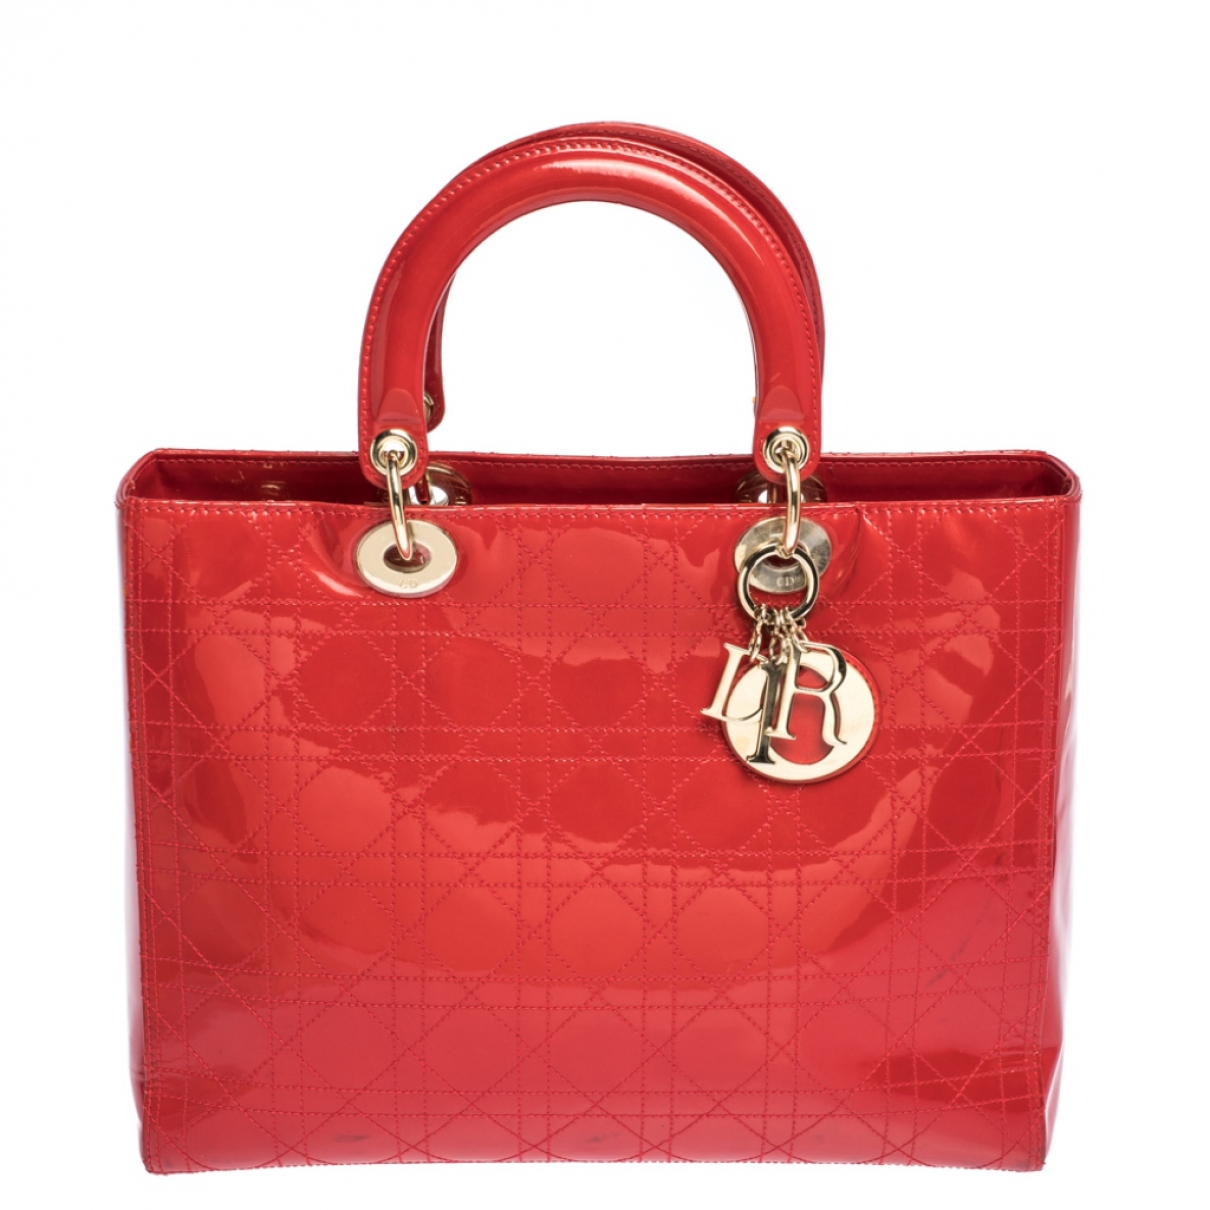 Dior Lady Dior Red Patent leather handbag for Women N